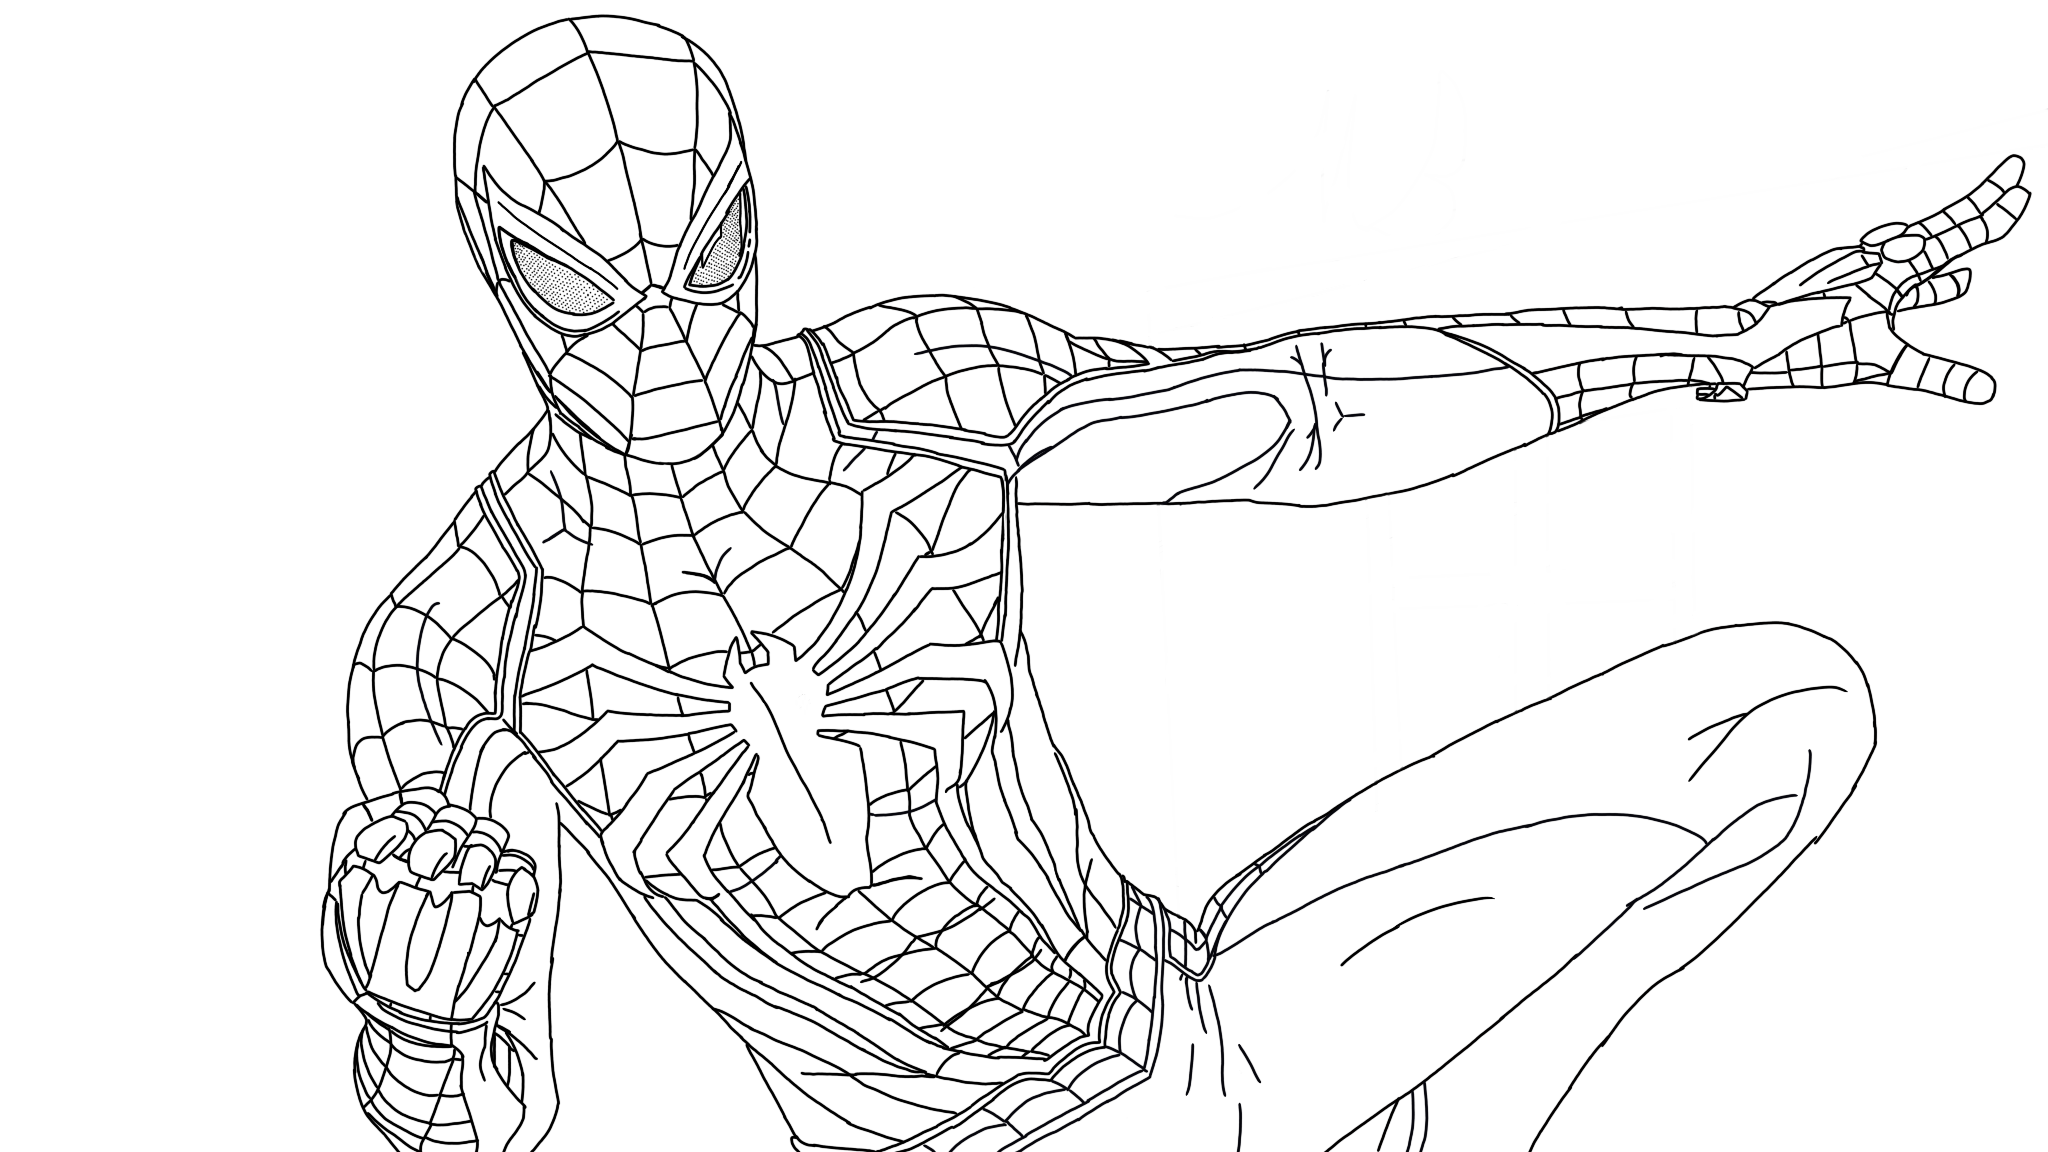 coloring kids spider man far from home coloring pages spider man ps4 superhero coloring pages coloring coloring from spider home far kids man pages